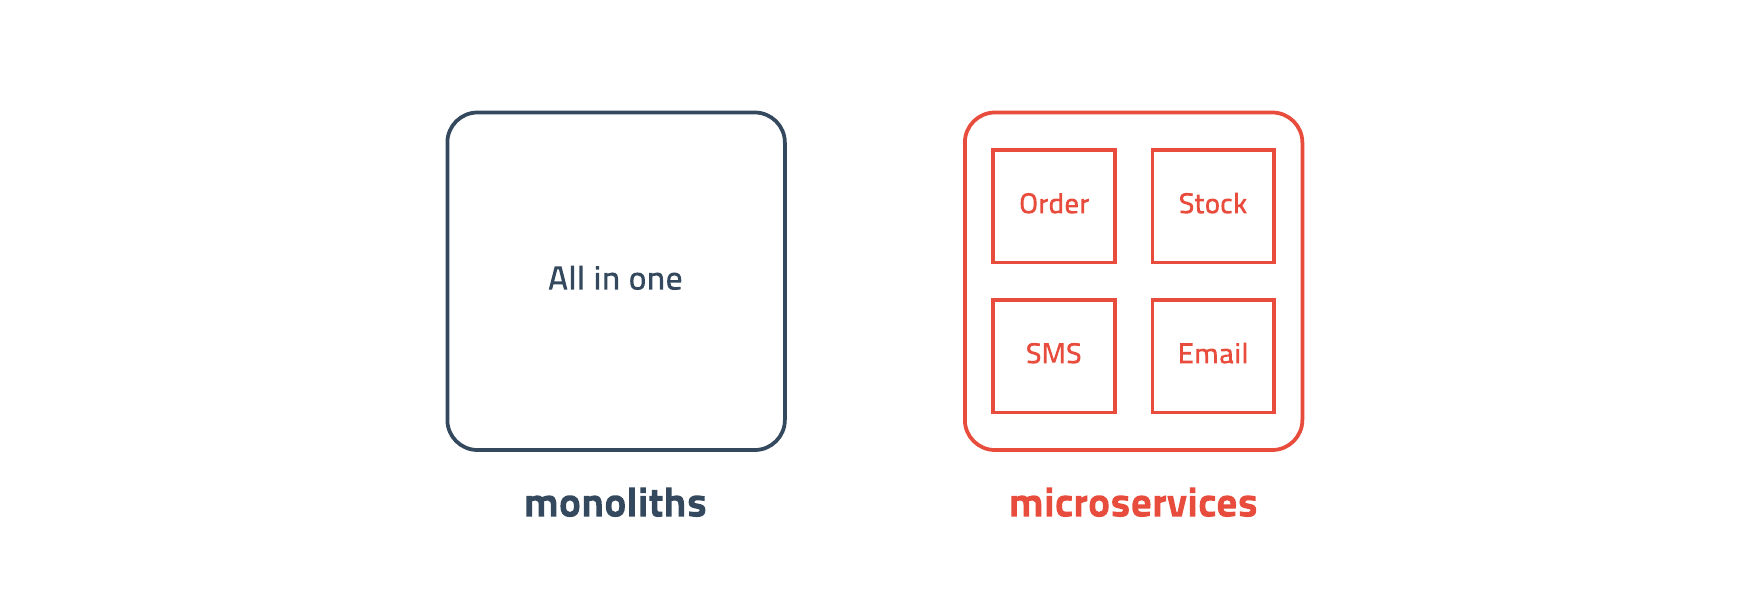 monoliths / microservices